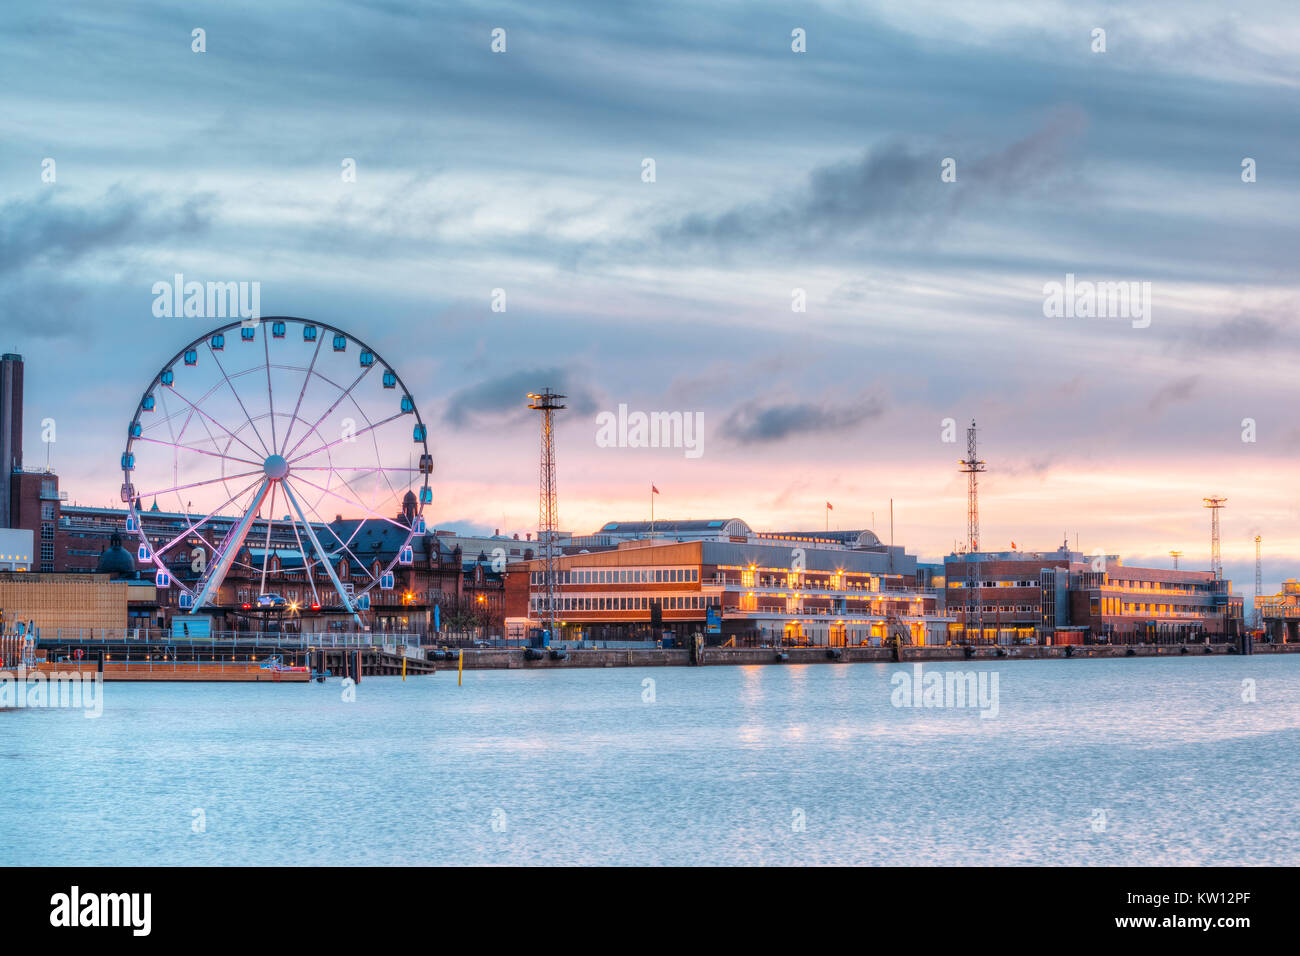 Helsinki, Finland. View Of Embankment With Ferris Wheel In Evening Night Illuminations. Stock Photo